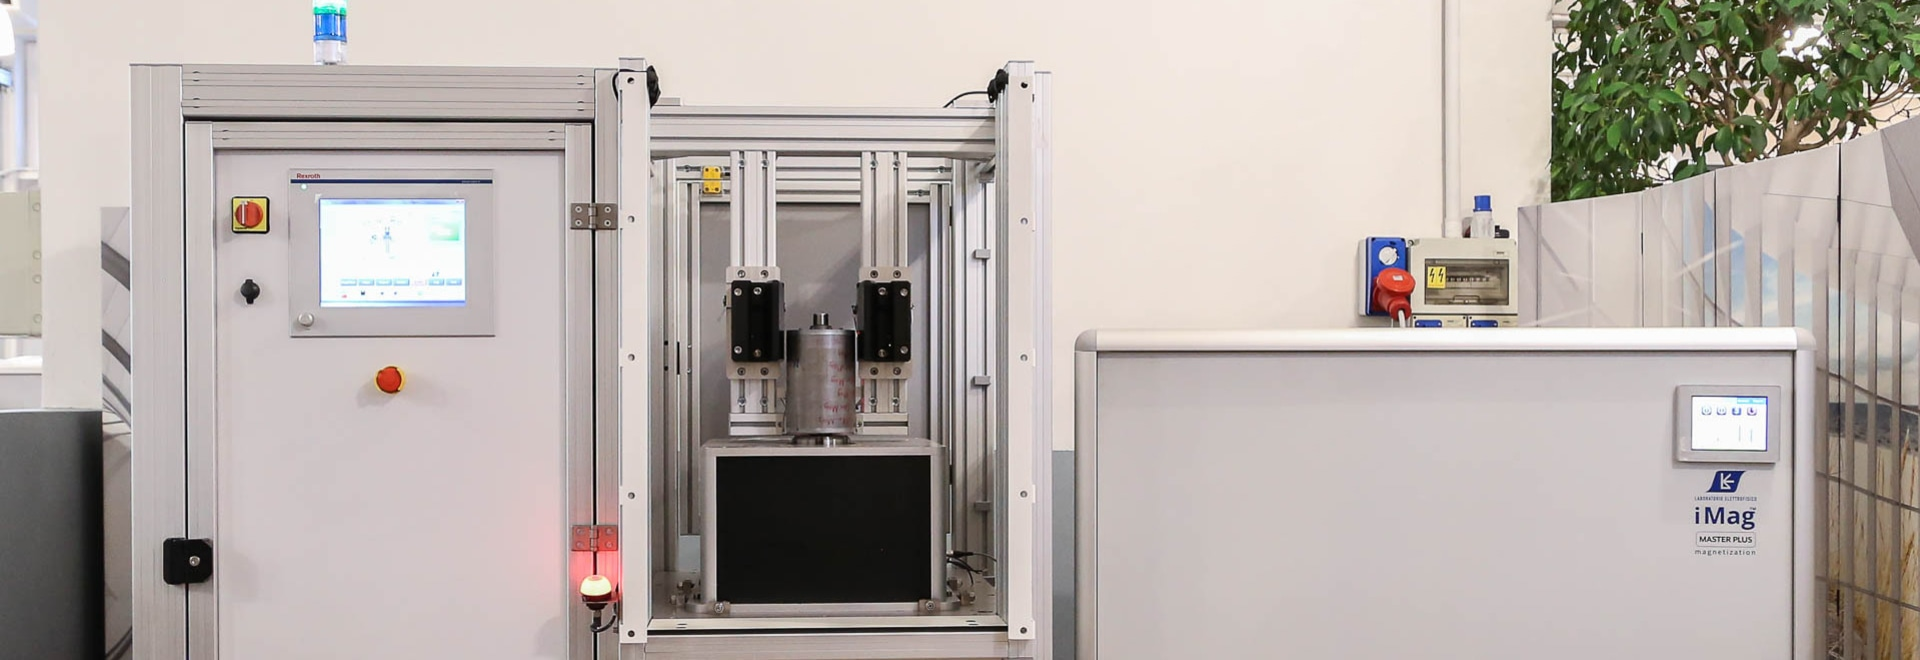 Custom magnetizing system for automotive applications